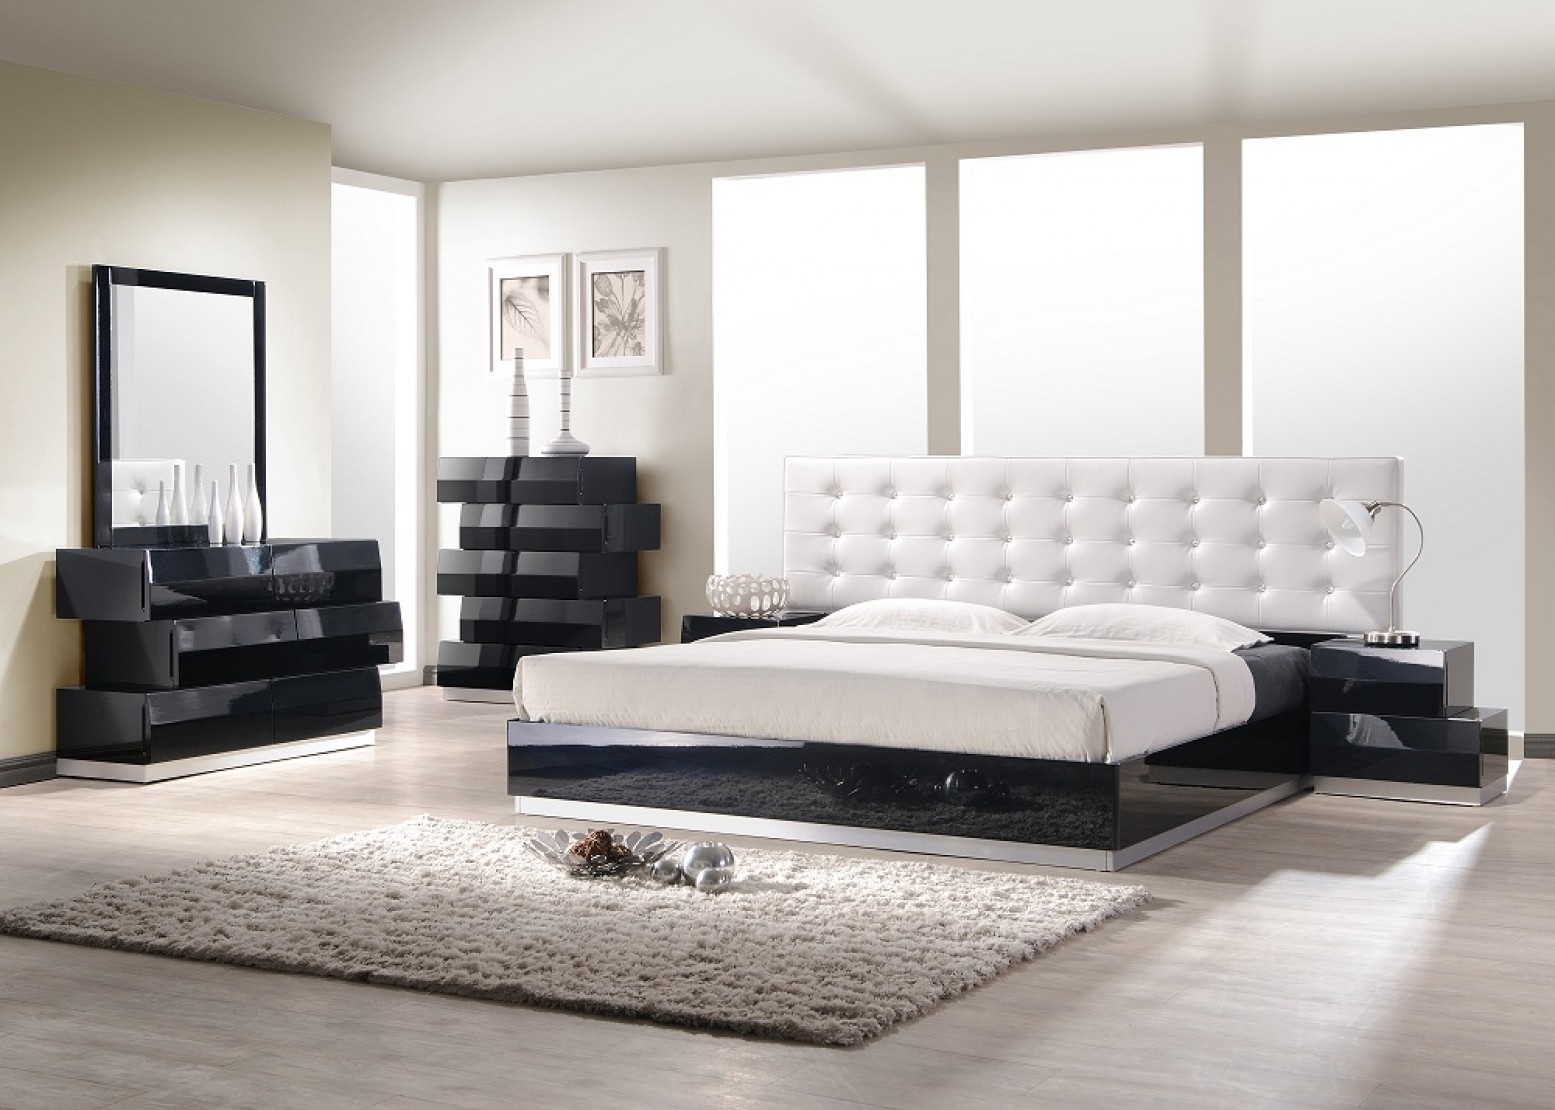 Milan Modern Leatherette Platform Bedroom Set Black Lacquer regarding Black Modern Bedroom Set